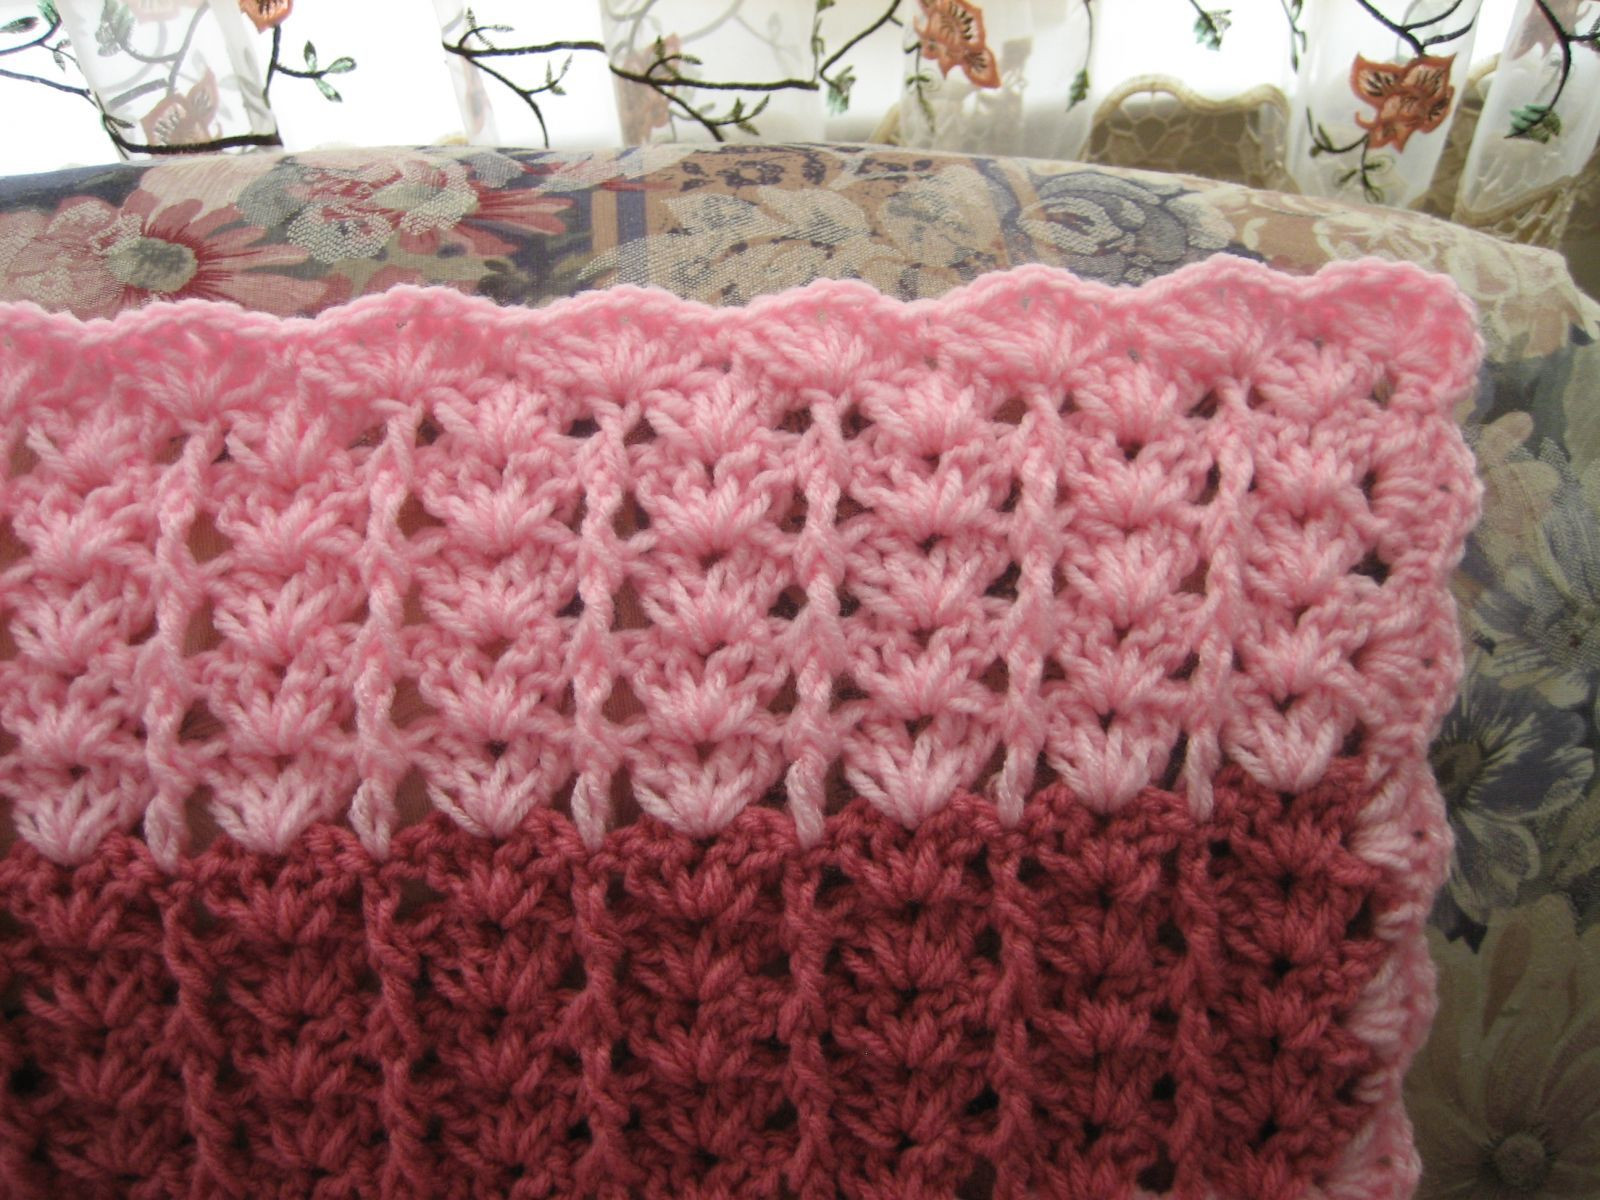 Lacy Shades of Pink Shells Afghan